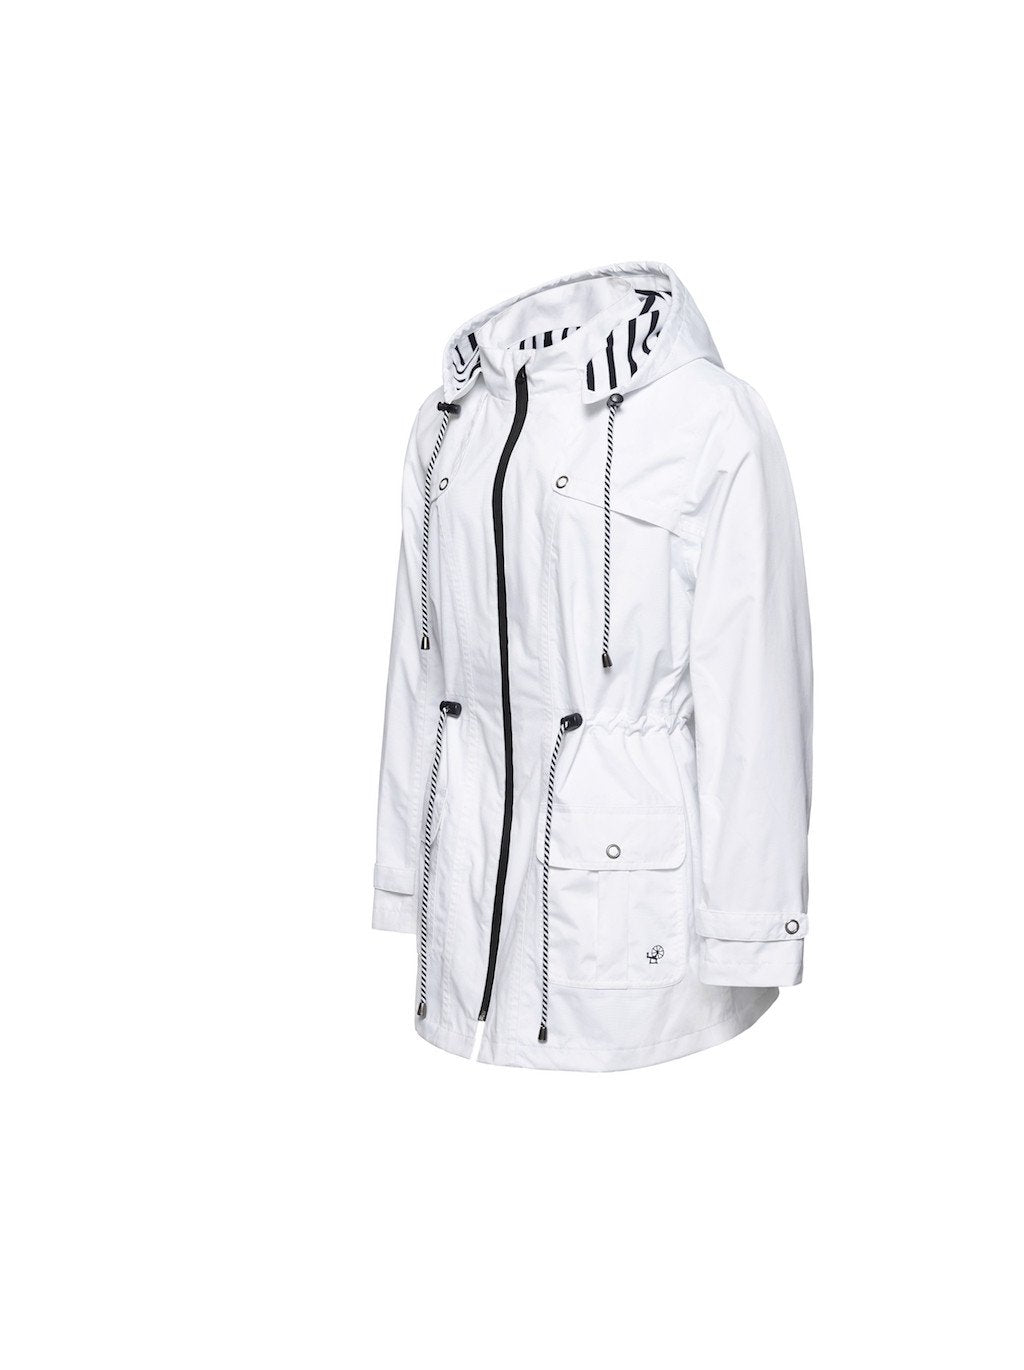 Millstrand Co. Espen All-Weather Jacket in White, Navy Trims